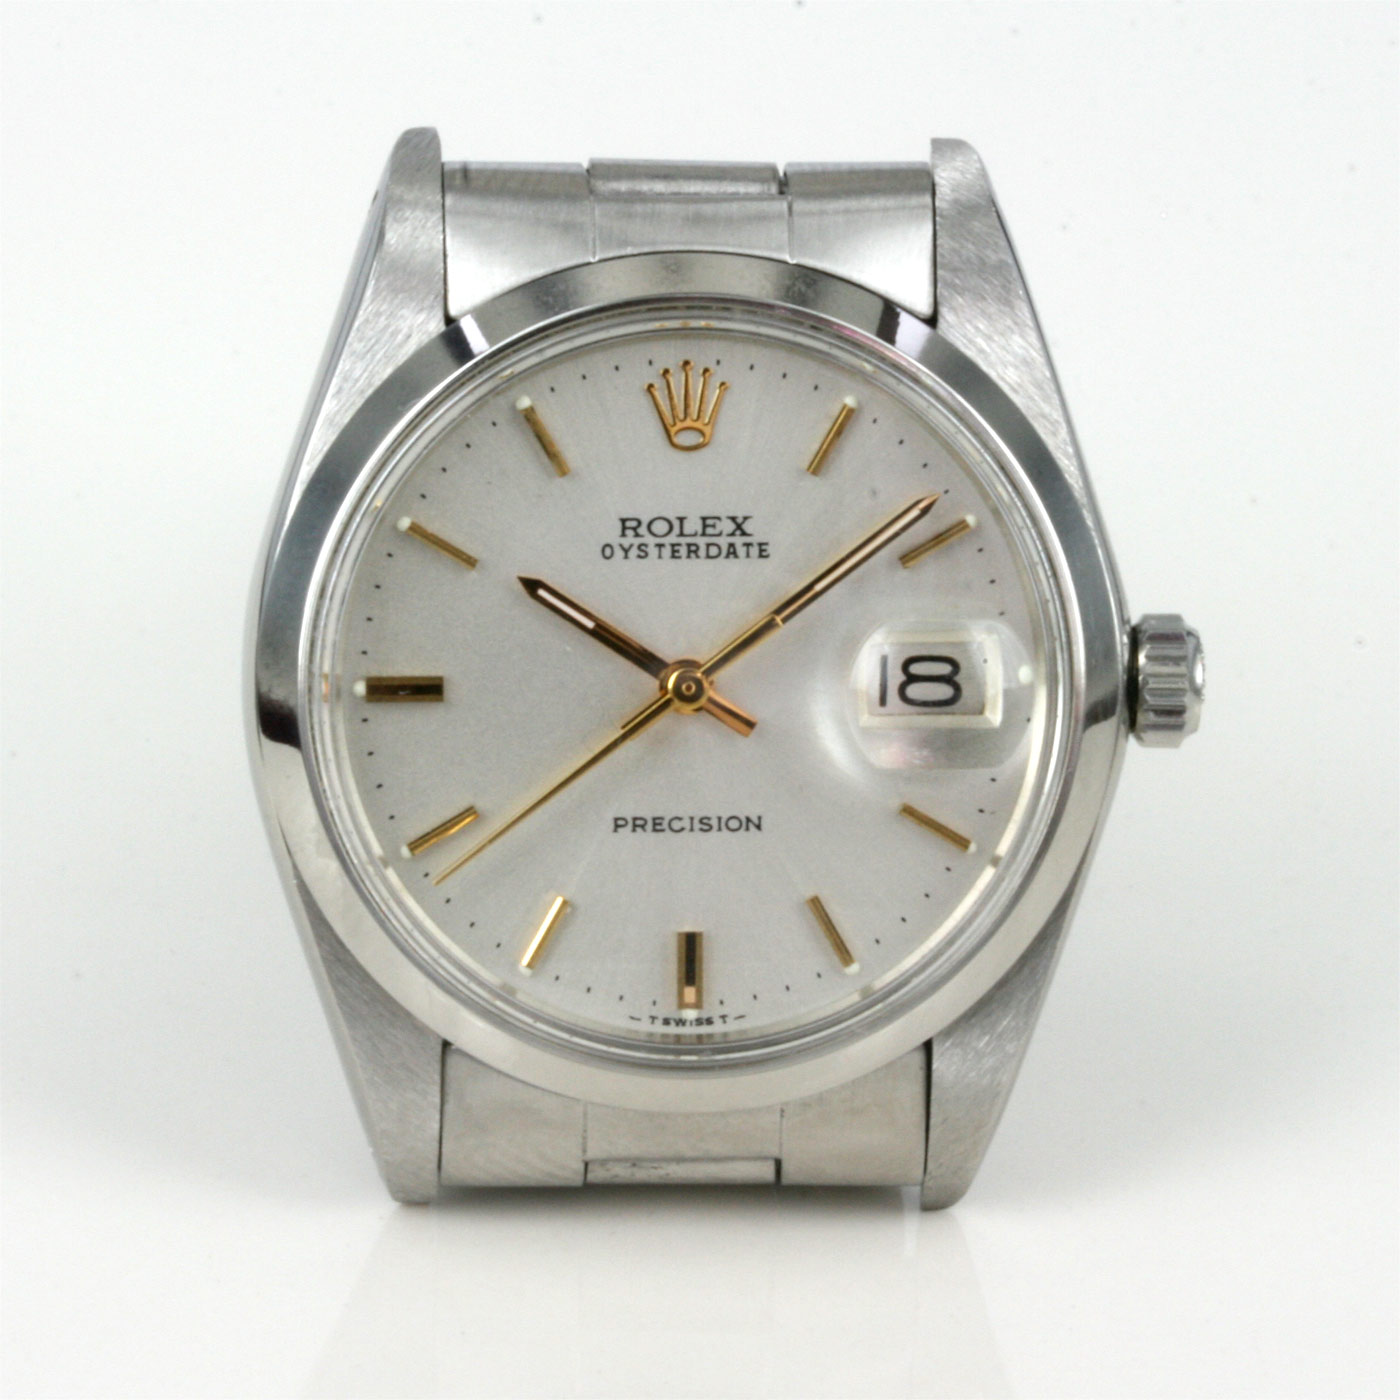 Buy Gents 1983 Rolex Precision watch. Sold Items, Sold ...